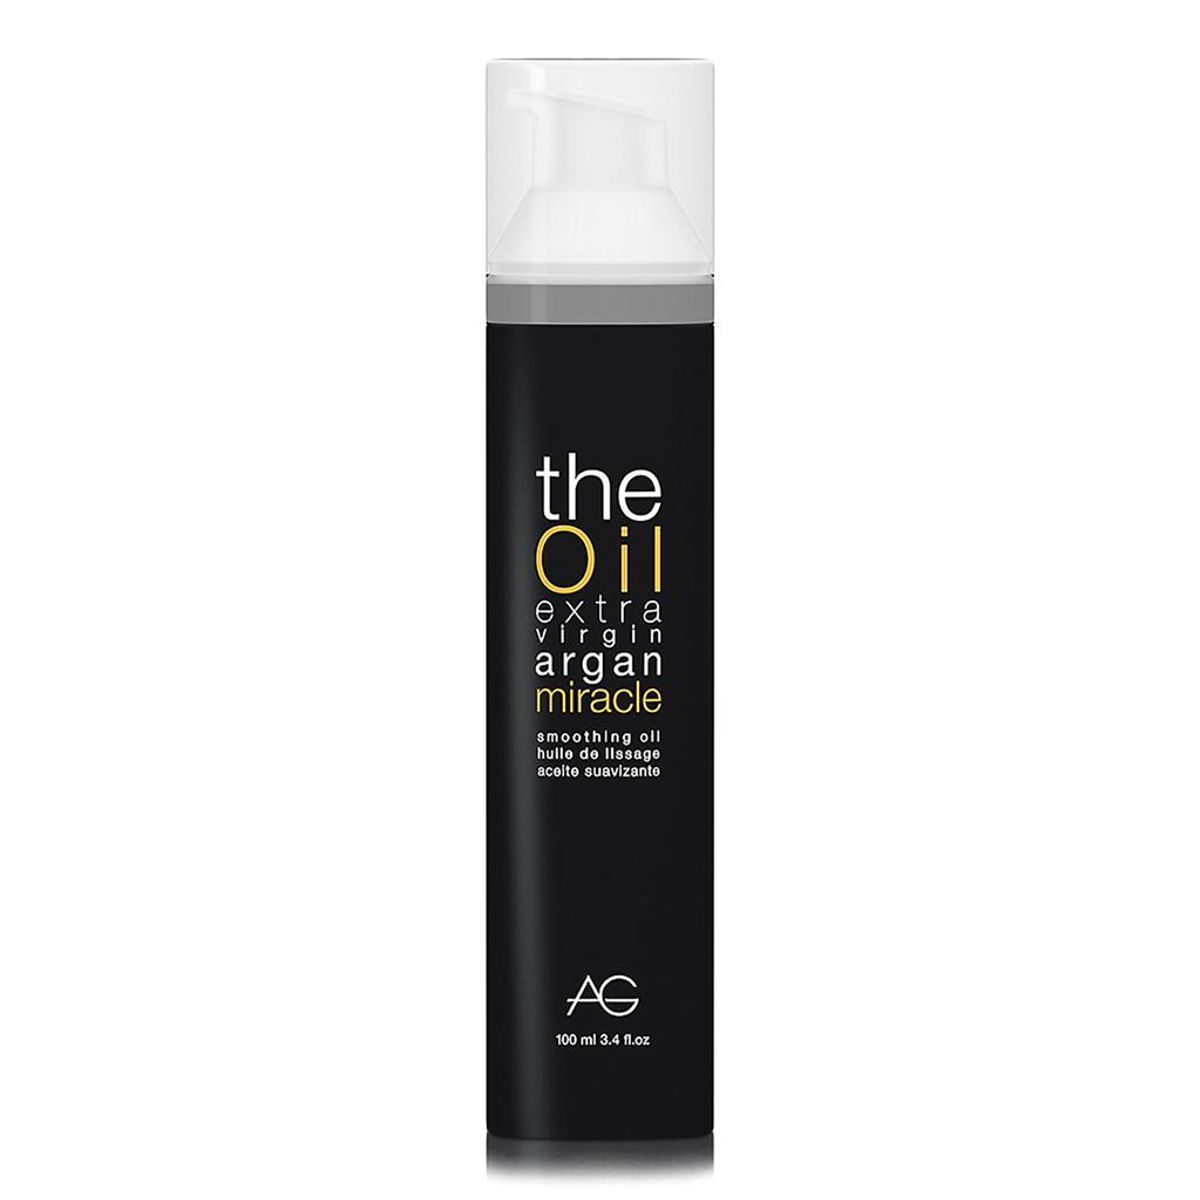 The Oil Extra Virgin Argan Miracle Soothing Oil